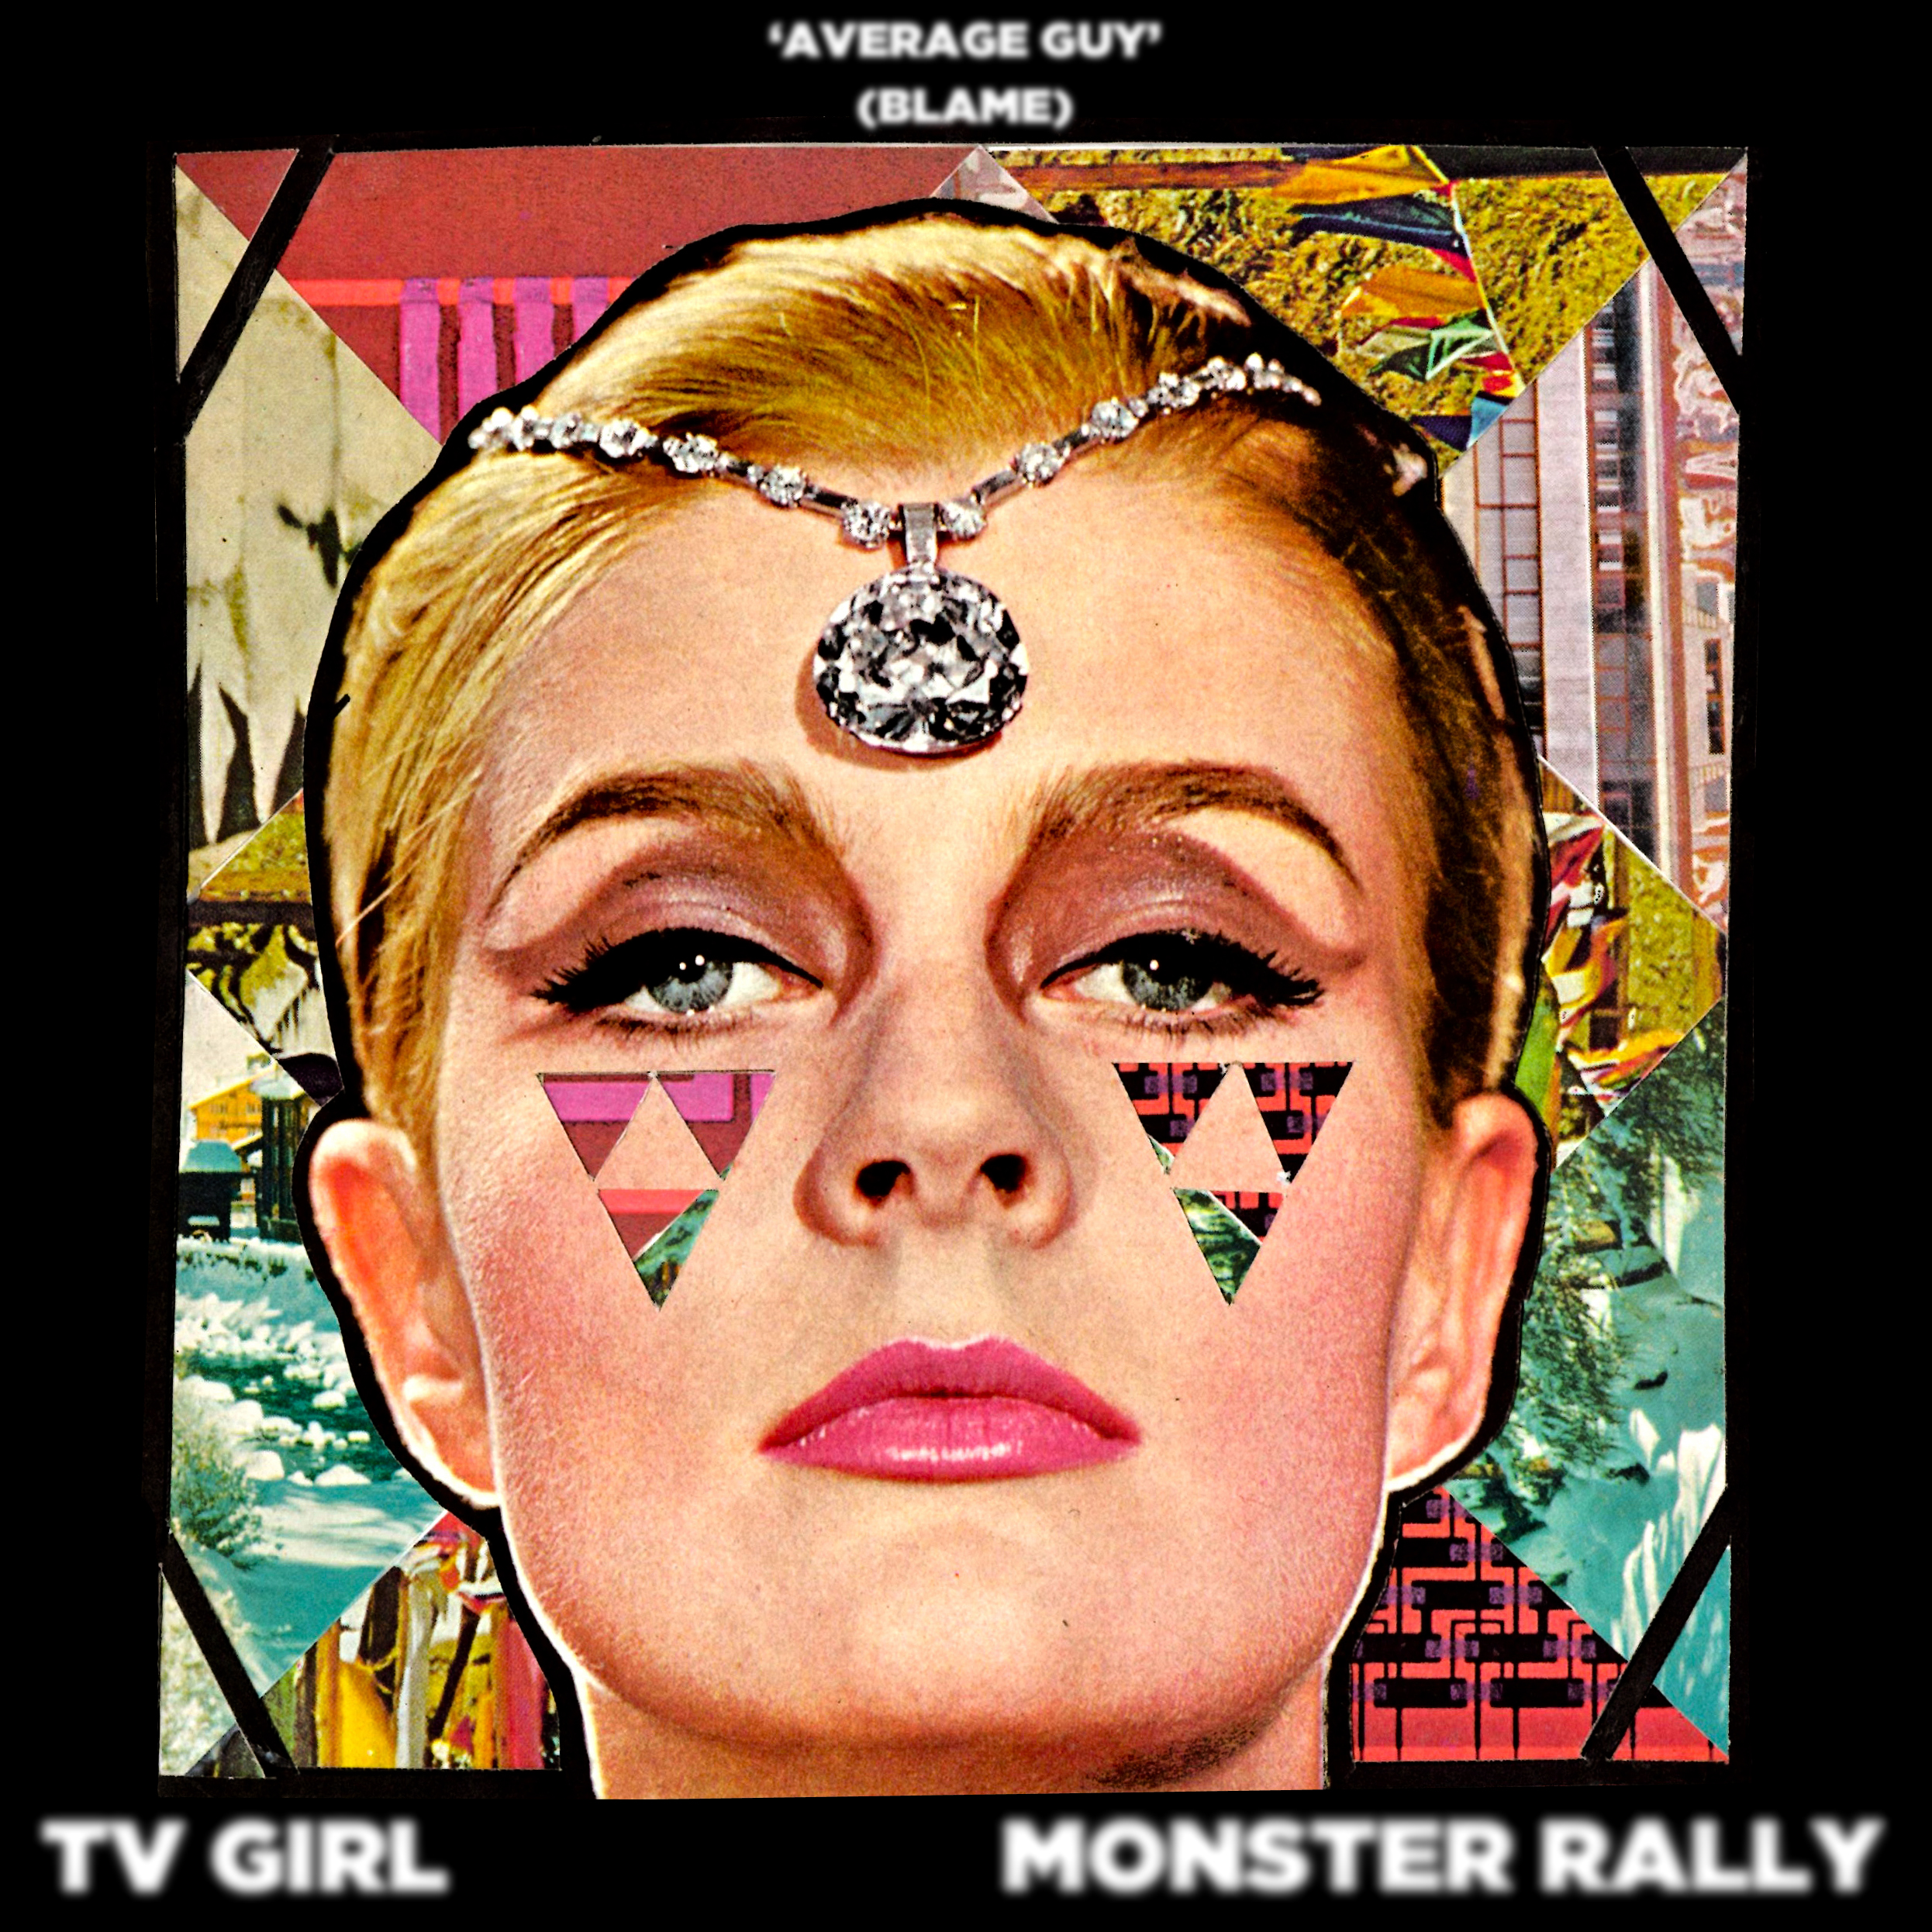 "TV Girl & Monster Rally ""Average Guy (Blame)"" Art"